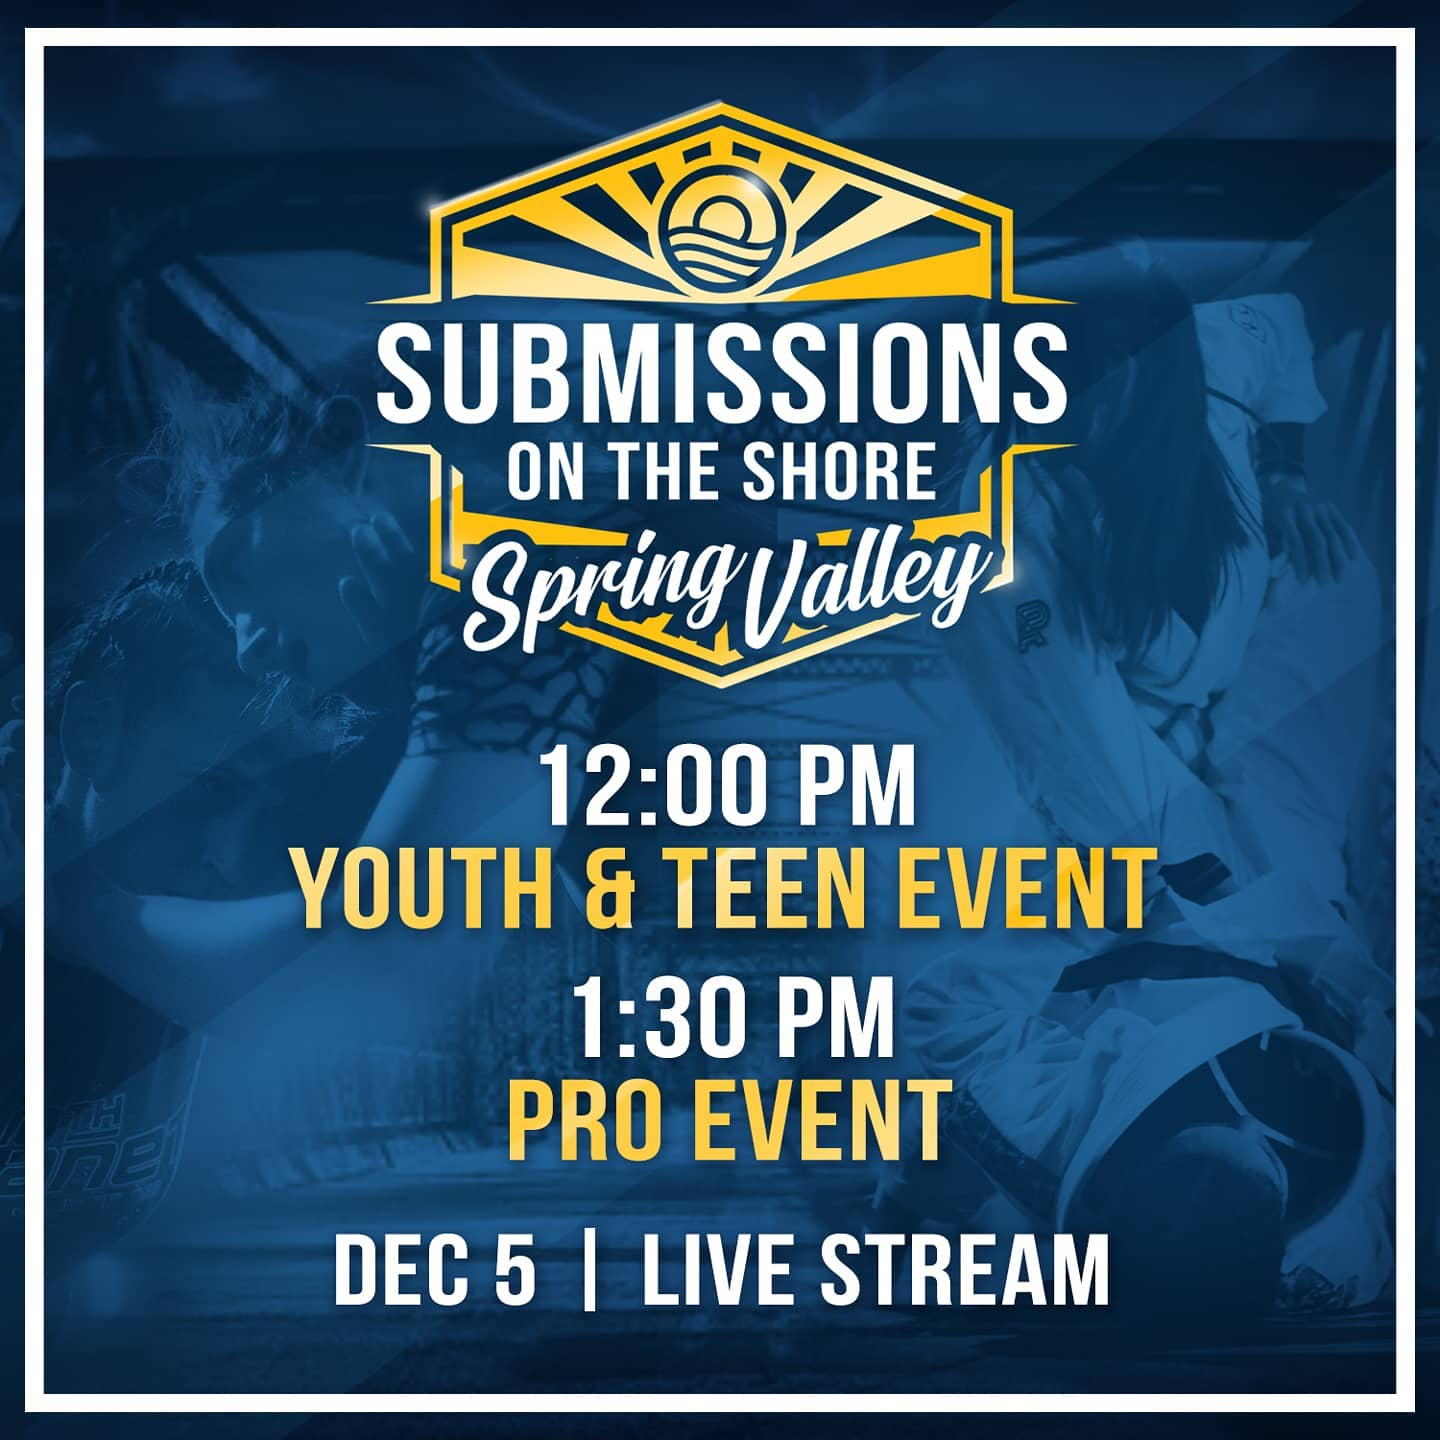 Submission on the shore - December 5th - Spring Valley